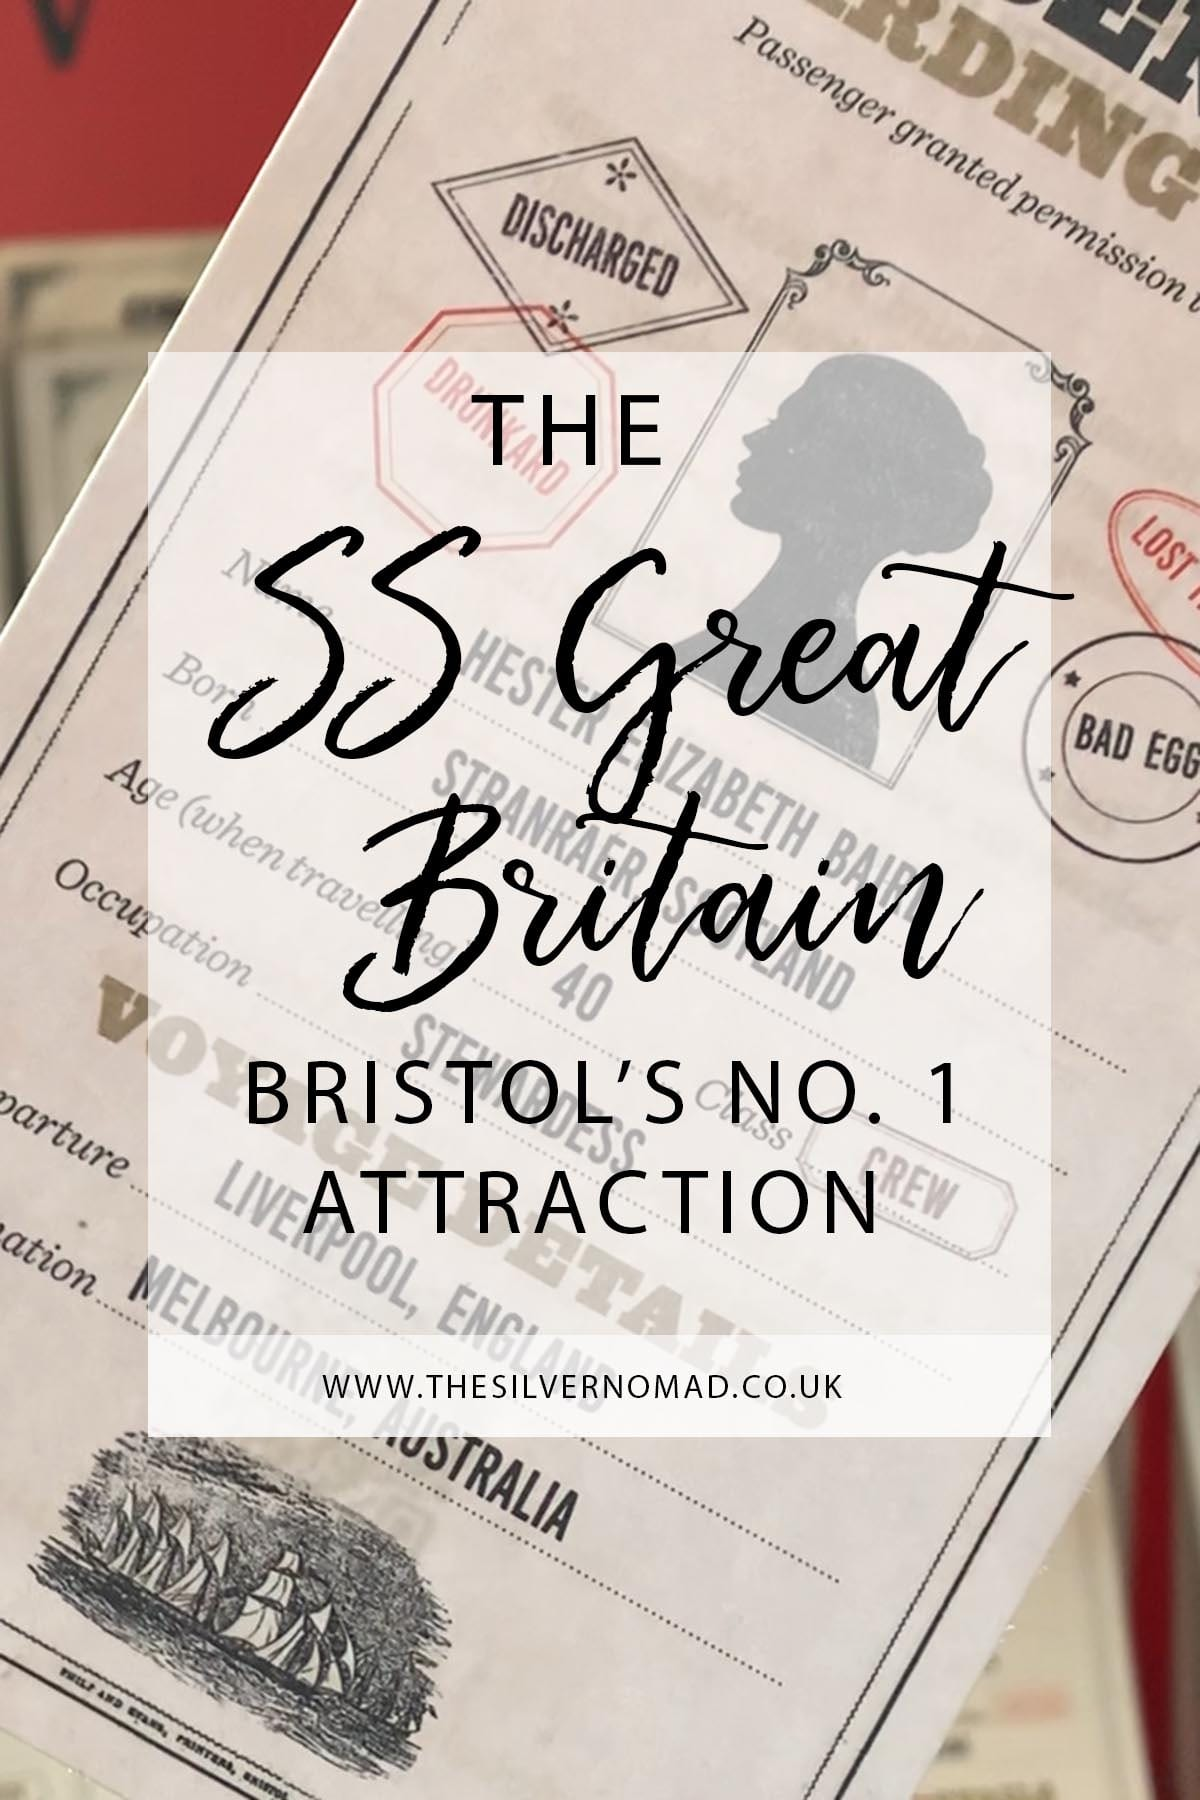 Come aboard the SS Great Britain and experience what it was like to be on board in 1840s